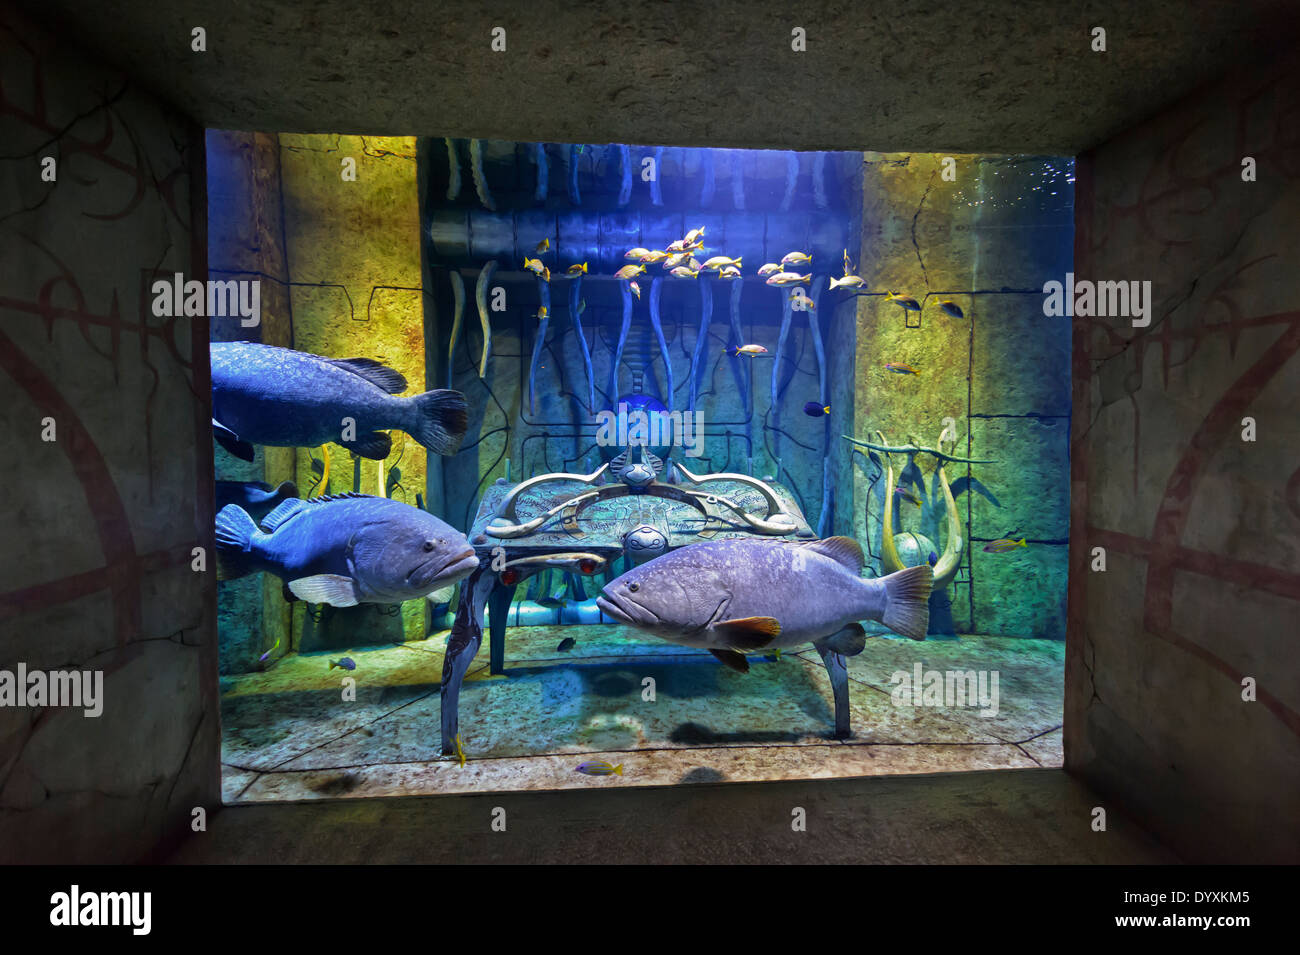 Fish aquarium in uae - Exotic Fish In A Beautifully Designed Aquarium At The Atlantis The Palm Hotel In Dubai United Arab Emirates Uae